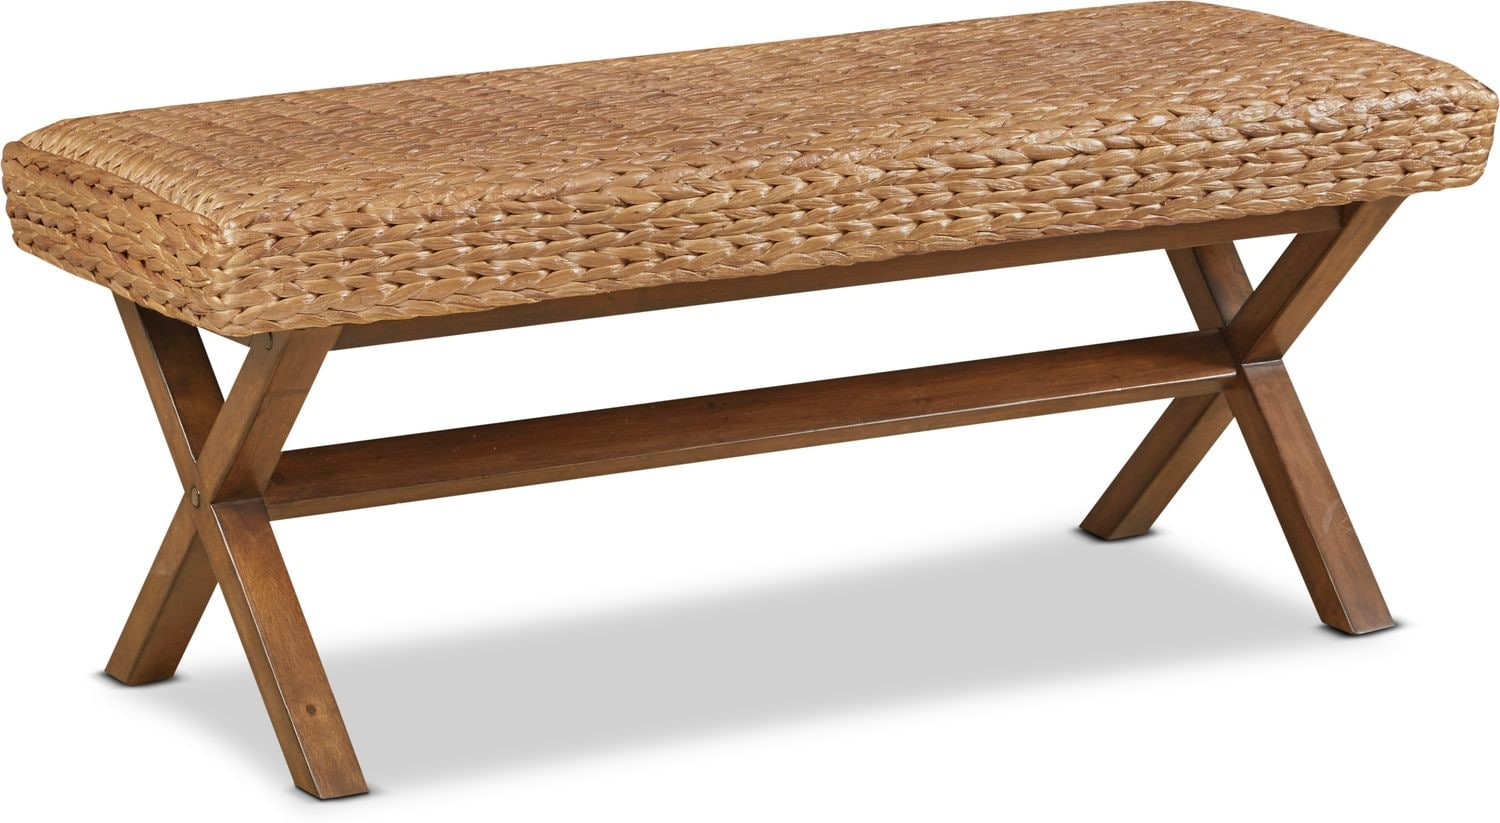 Accent and Occasional Furniture - Harbor Wicker Bench